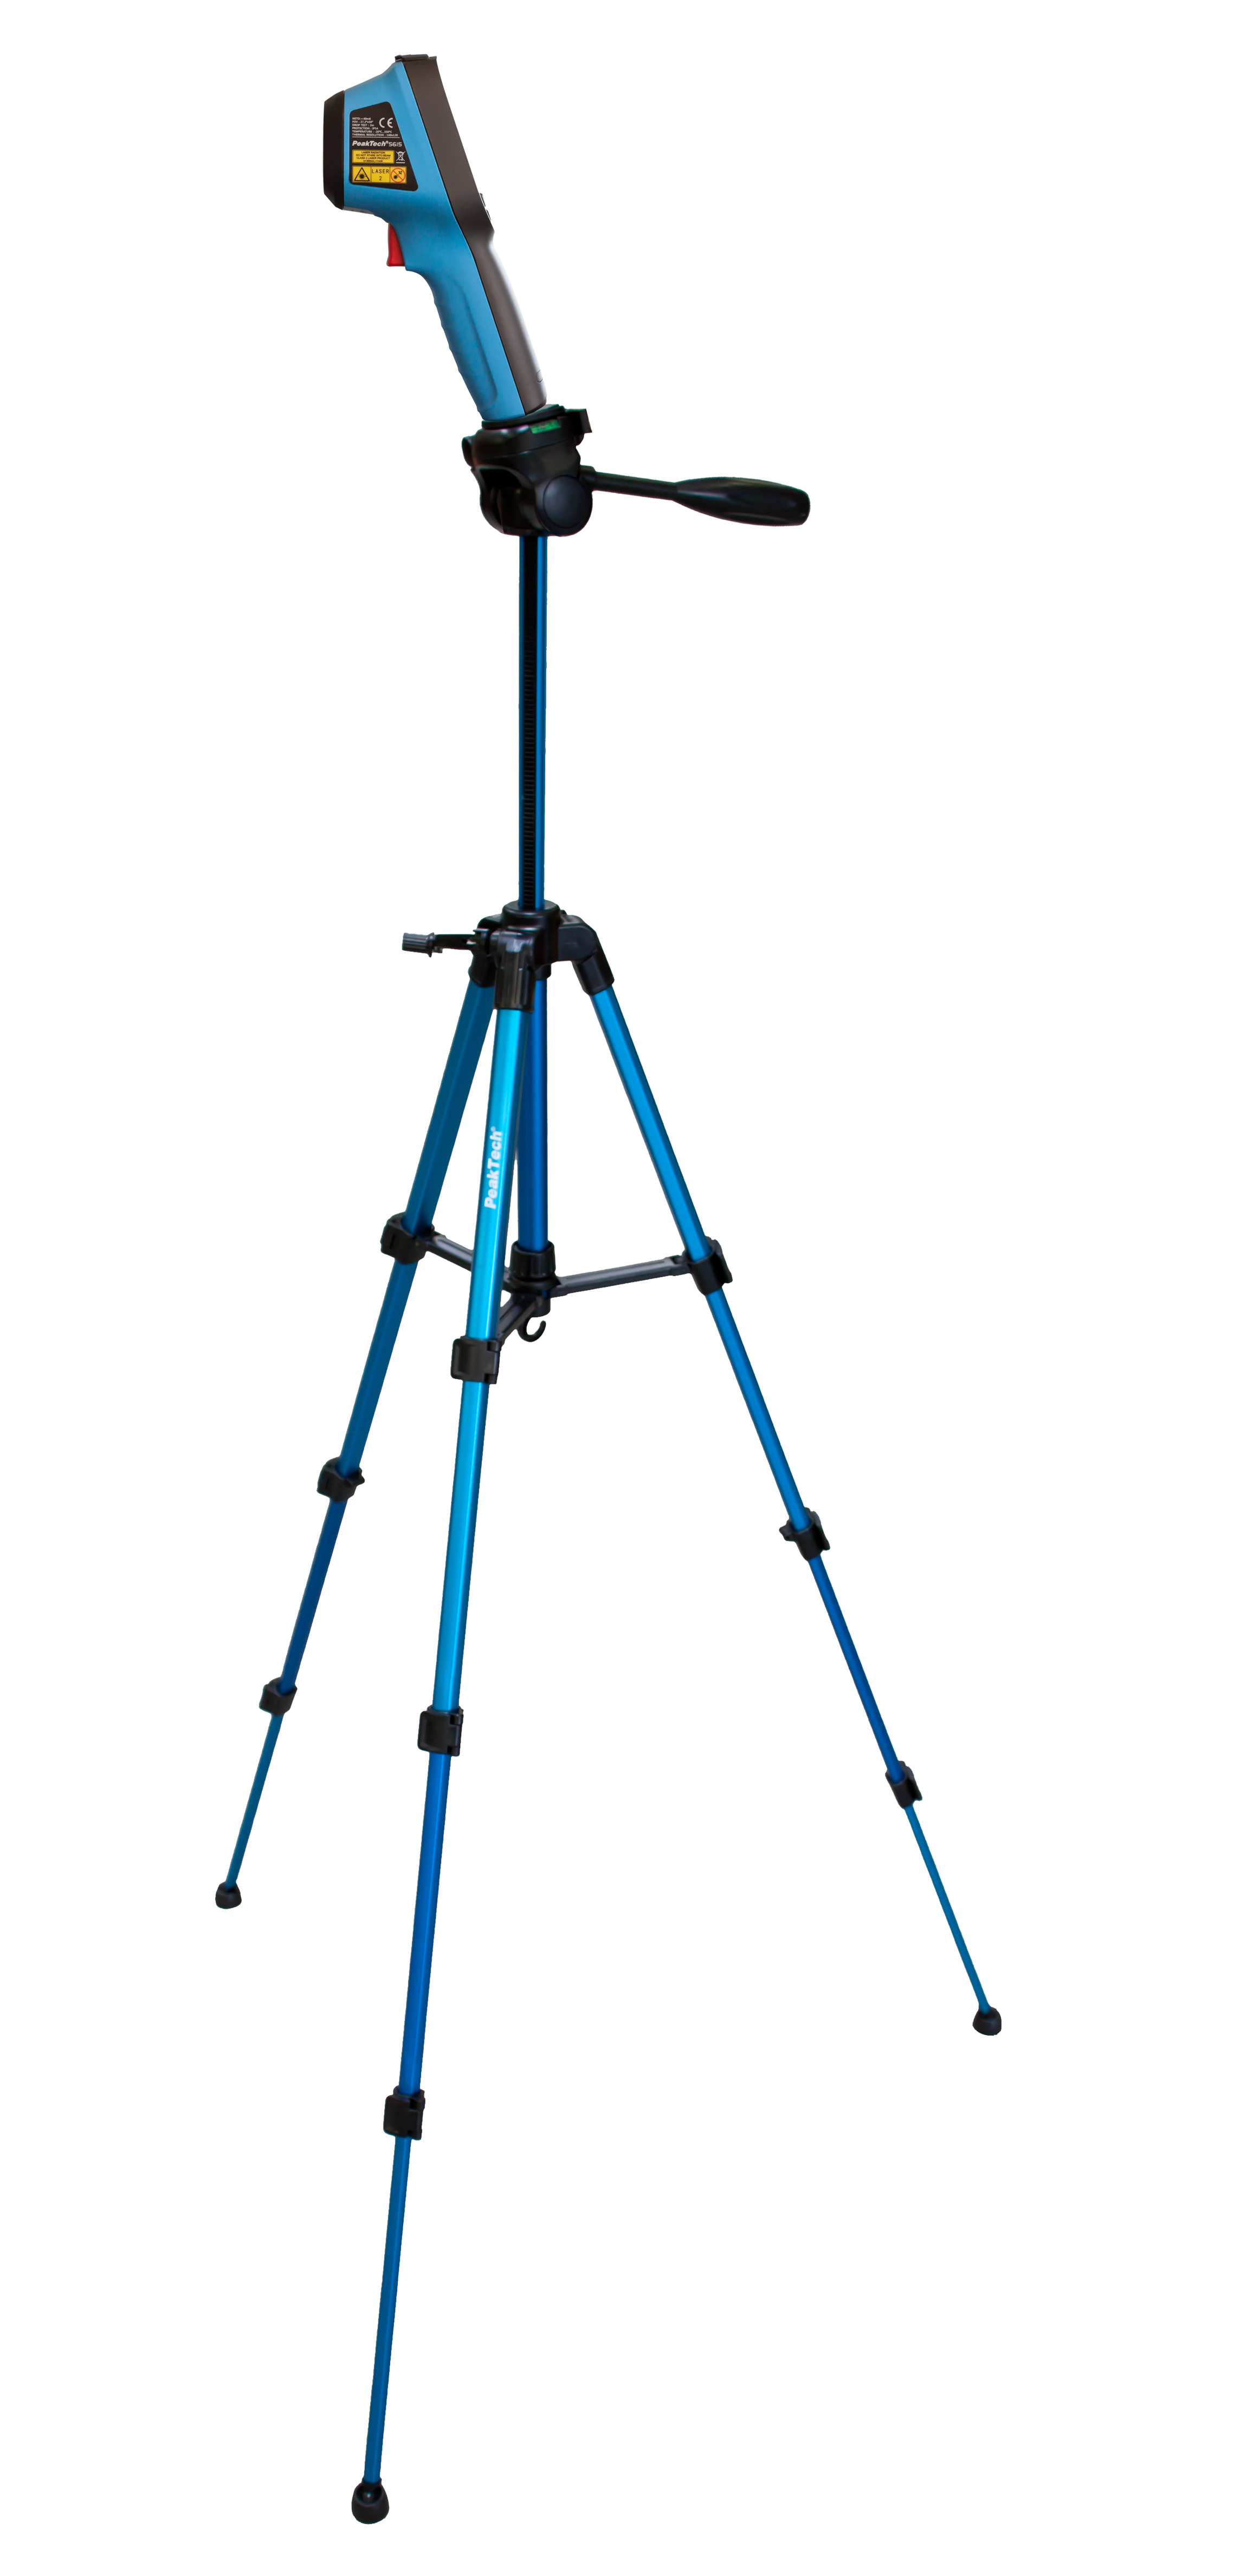 «PeakTech® P 7850» Tripod for cameras and measurement devices